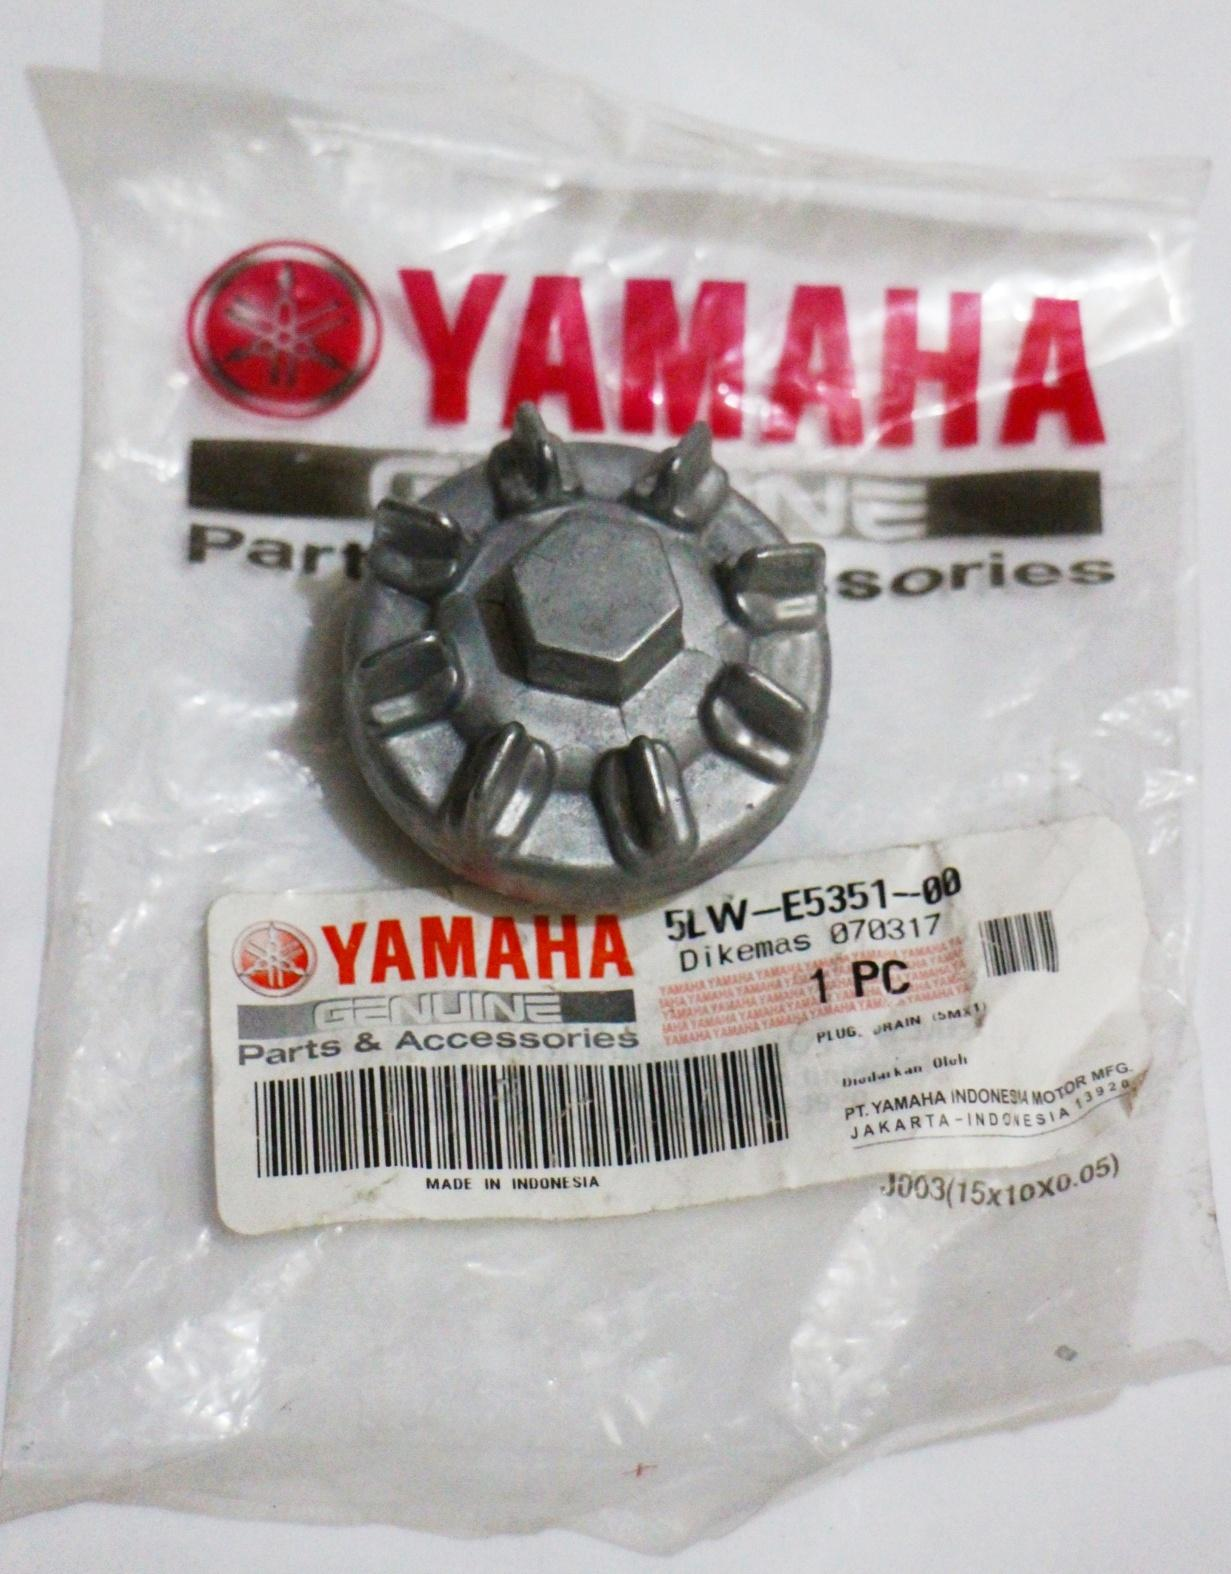 ORIGINAL YAMAHA DRAIN PLUG FOR MIO SPORTY, SOUL